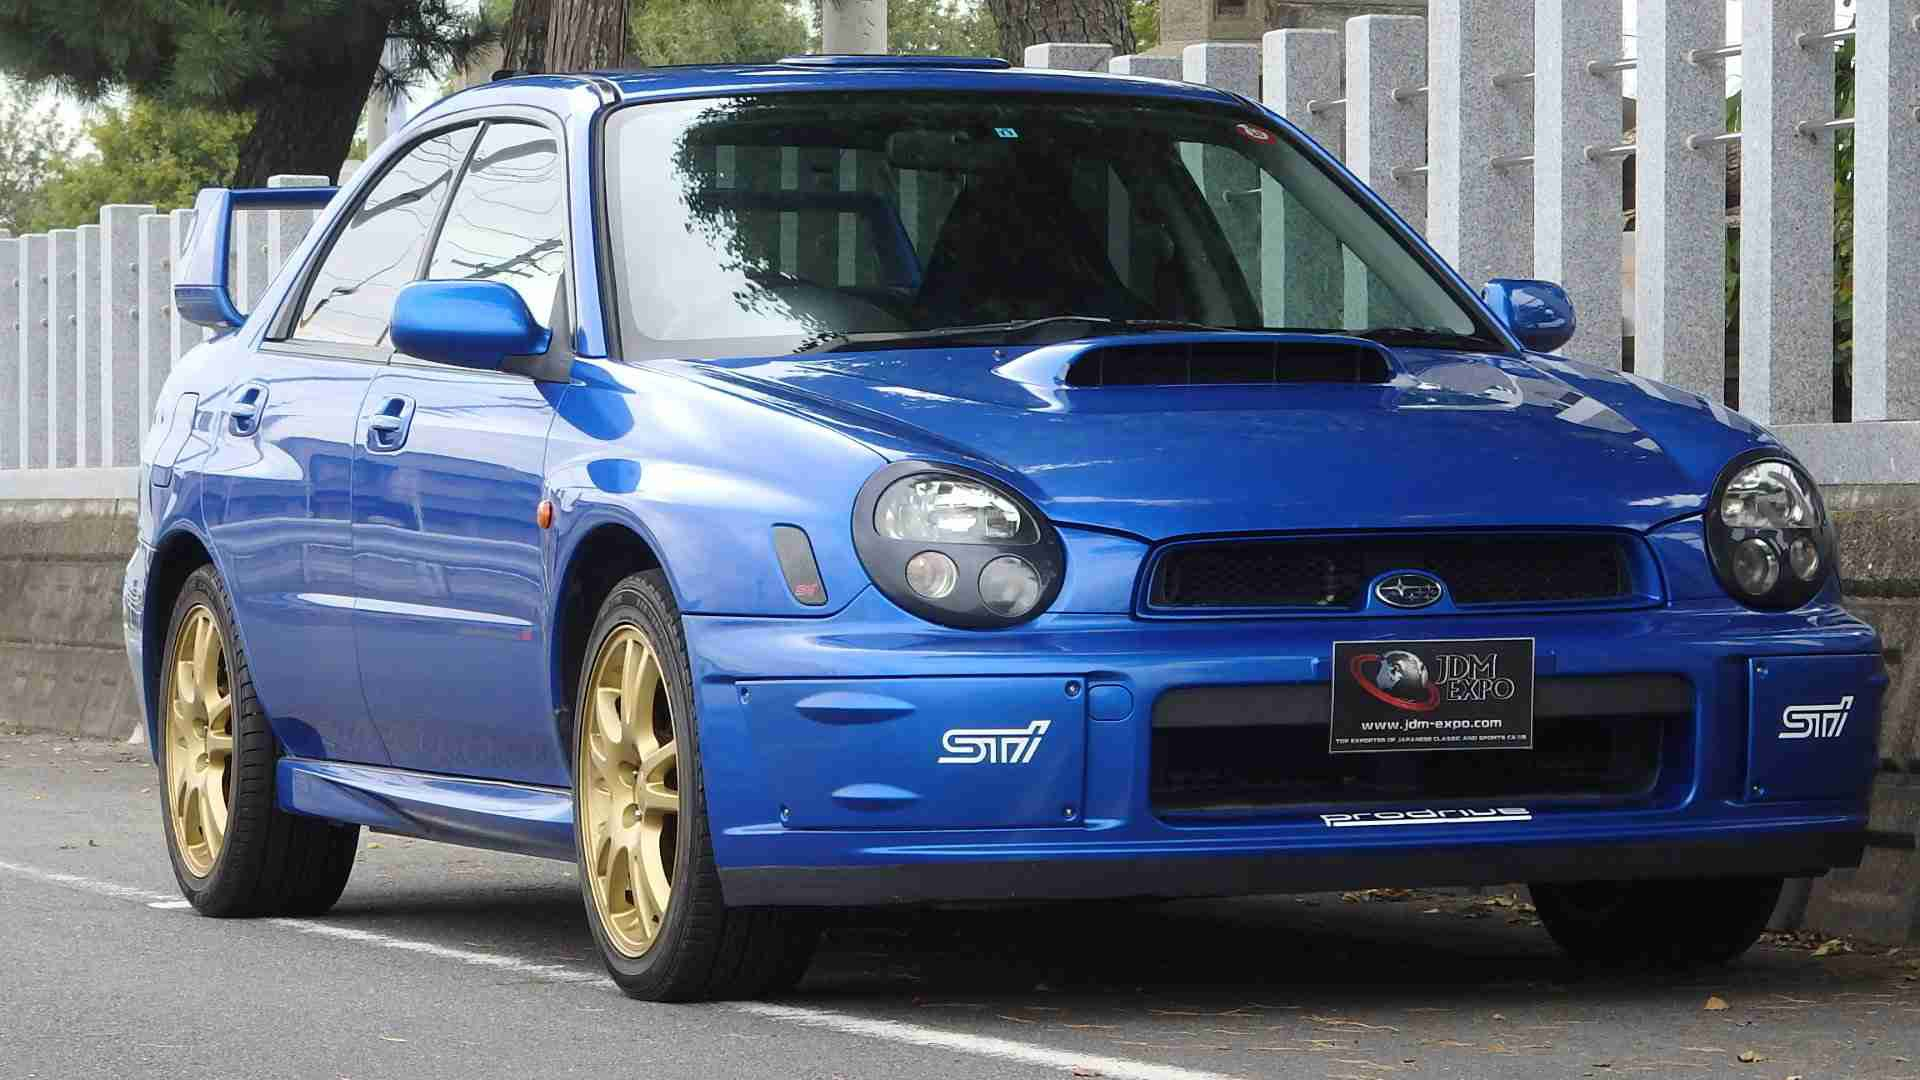 subaru impreza wrx sti for sale at jdm expo japan import jdm cars. Black Bedroom Furniture Sets. Home Design Ideas